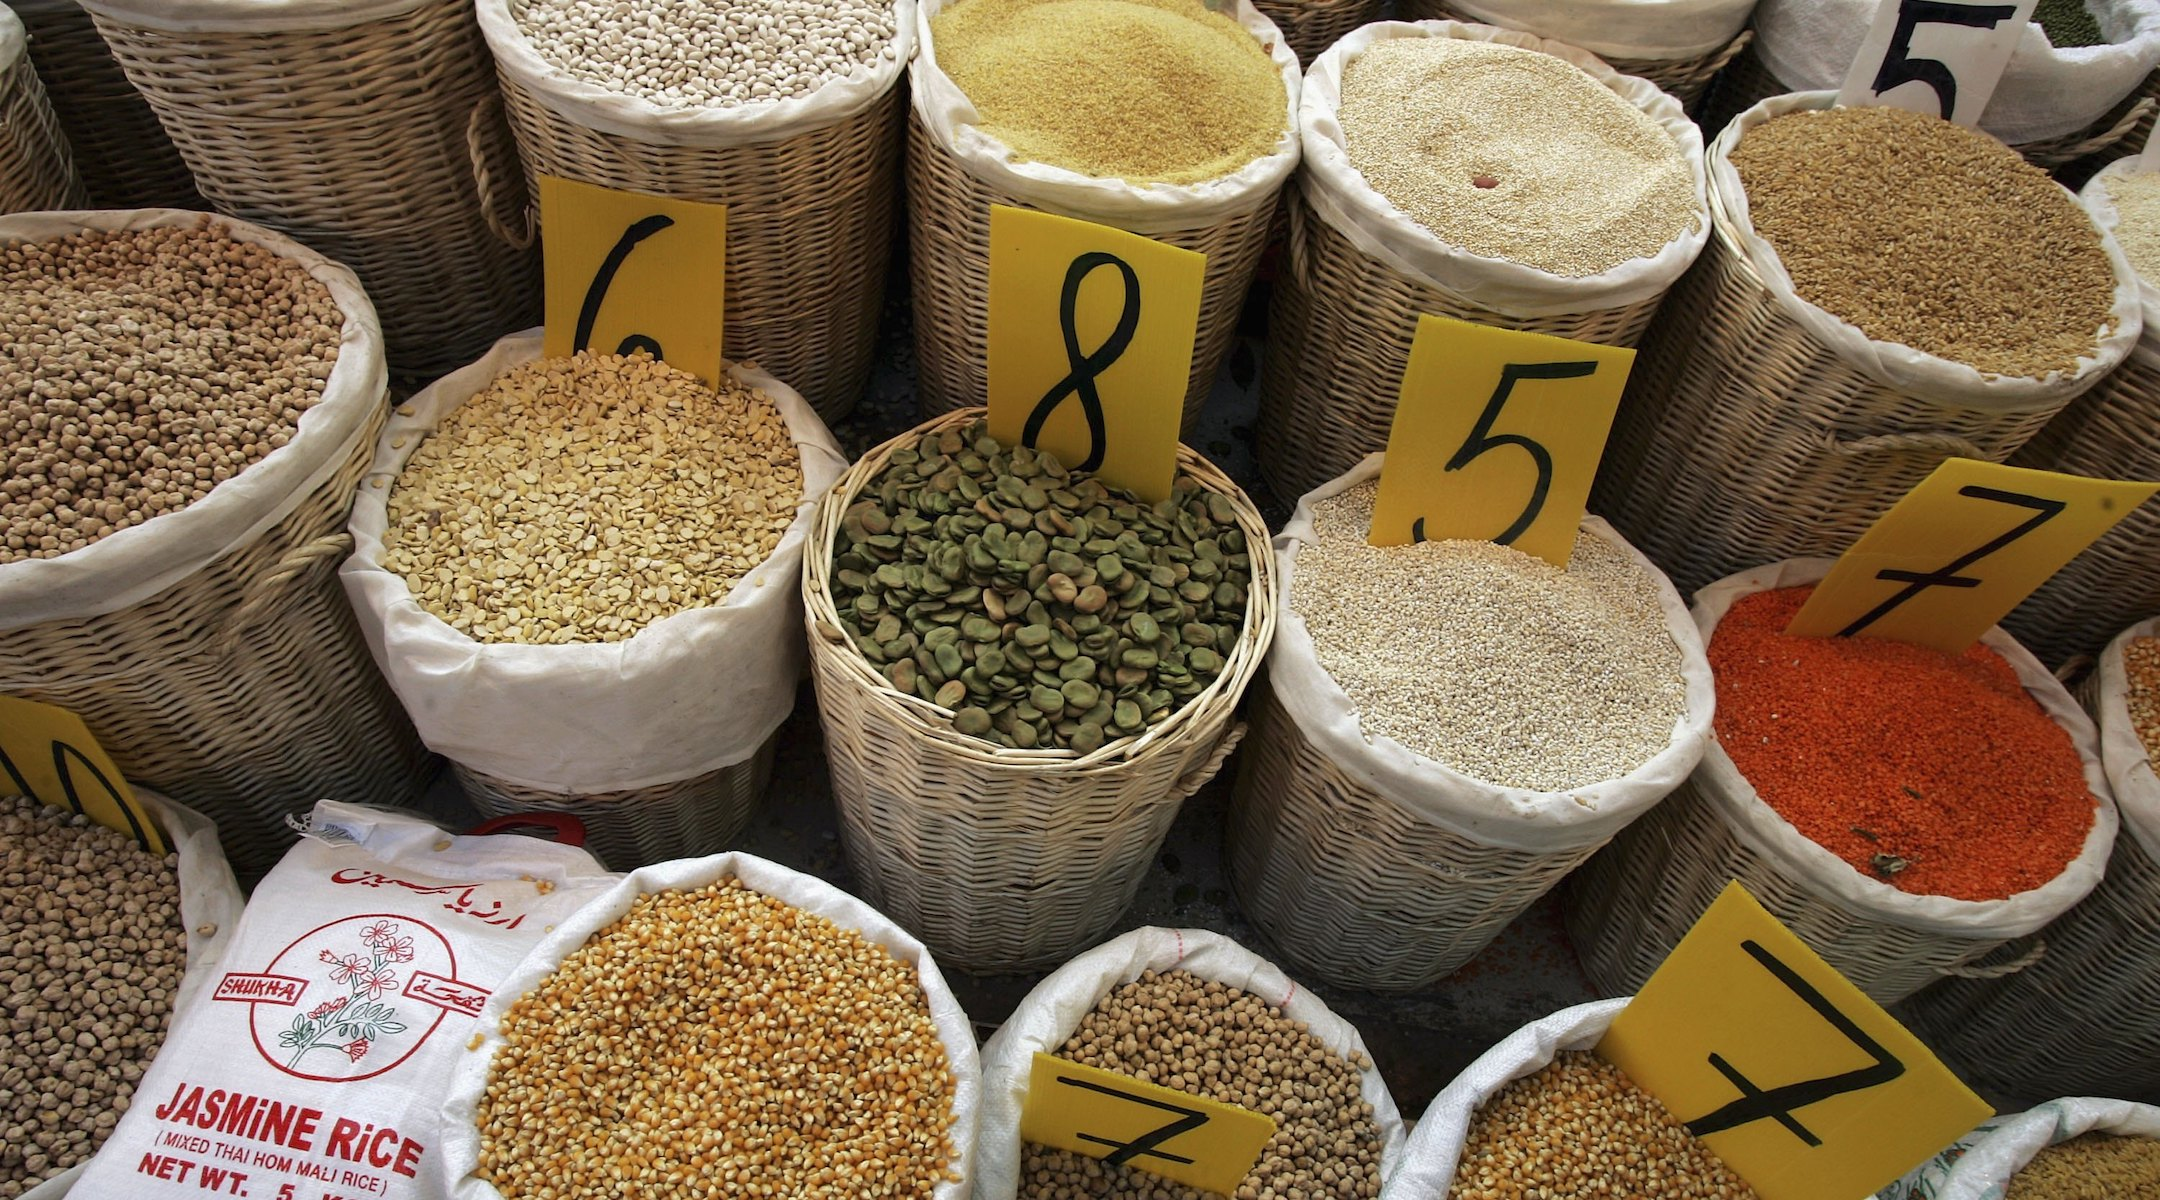 Rice, lentils, chick peas, beans and other legumes shown in a produce market in Netanya, Israel. (Photo/JTA-David Silverman-Getty Images)